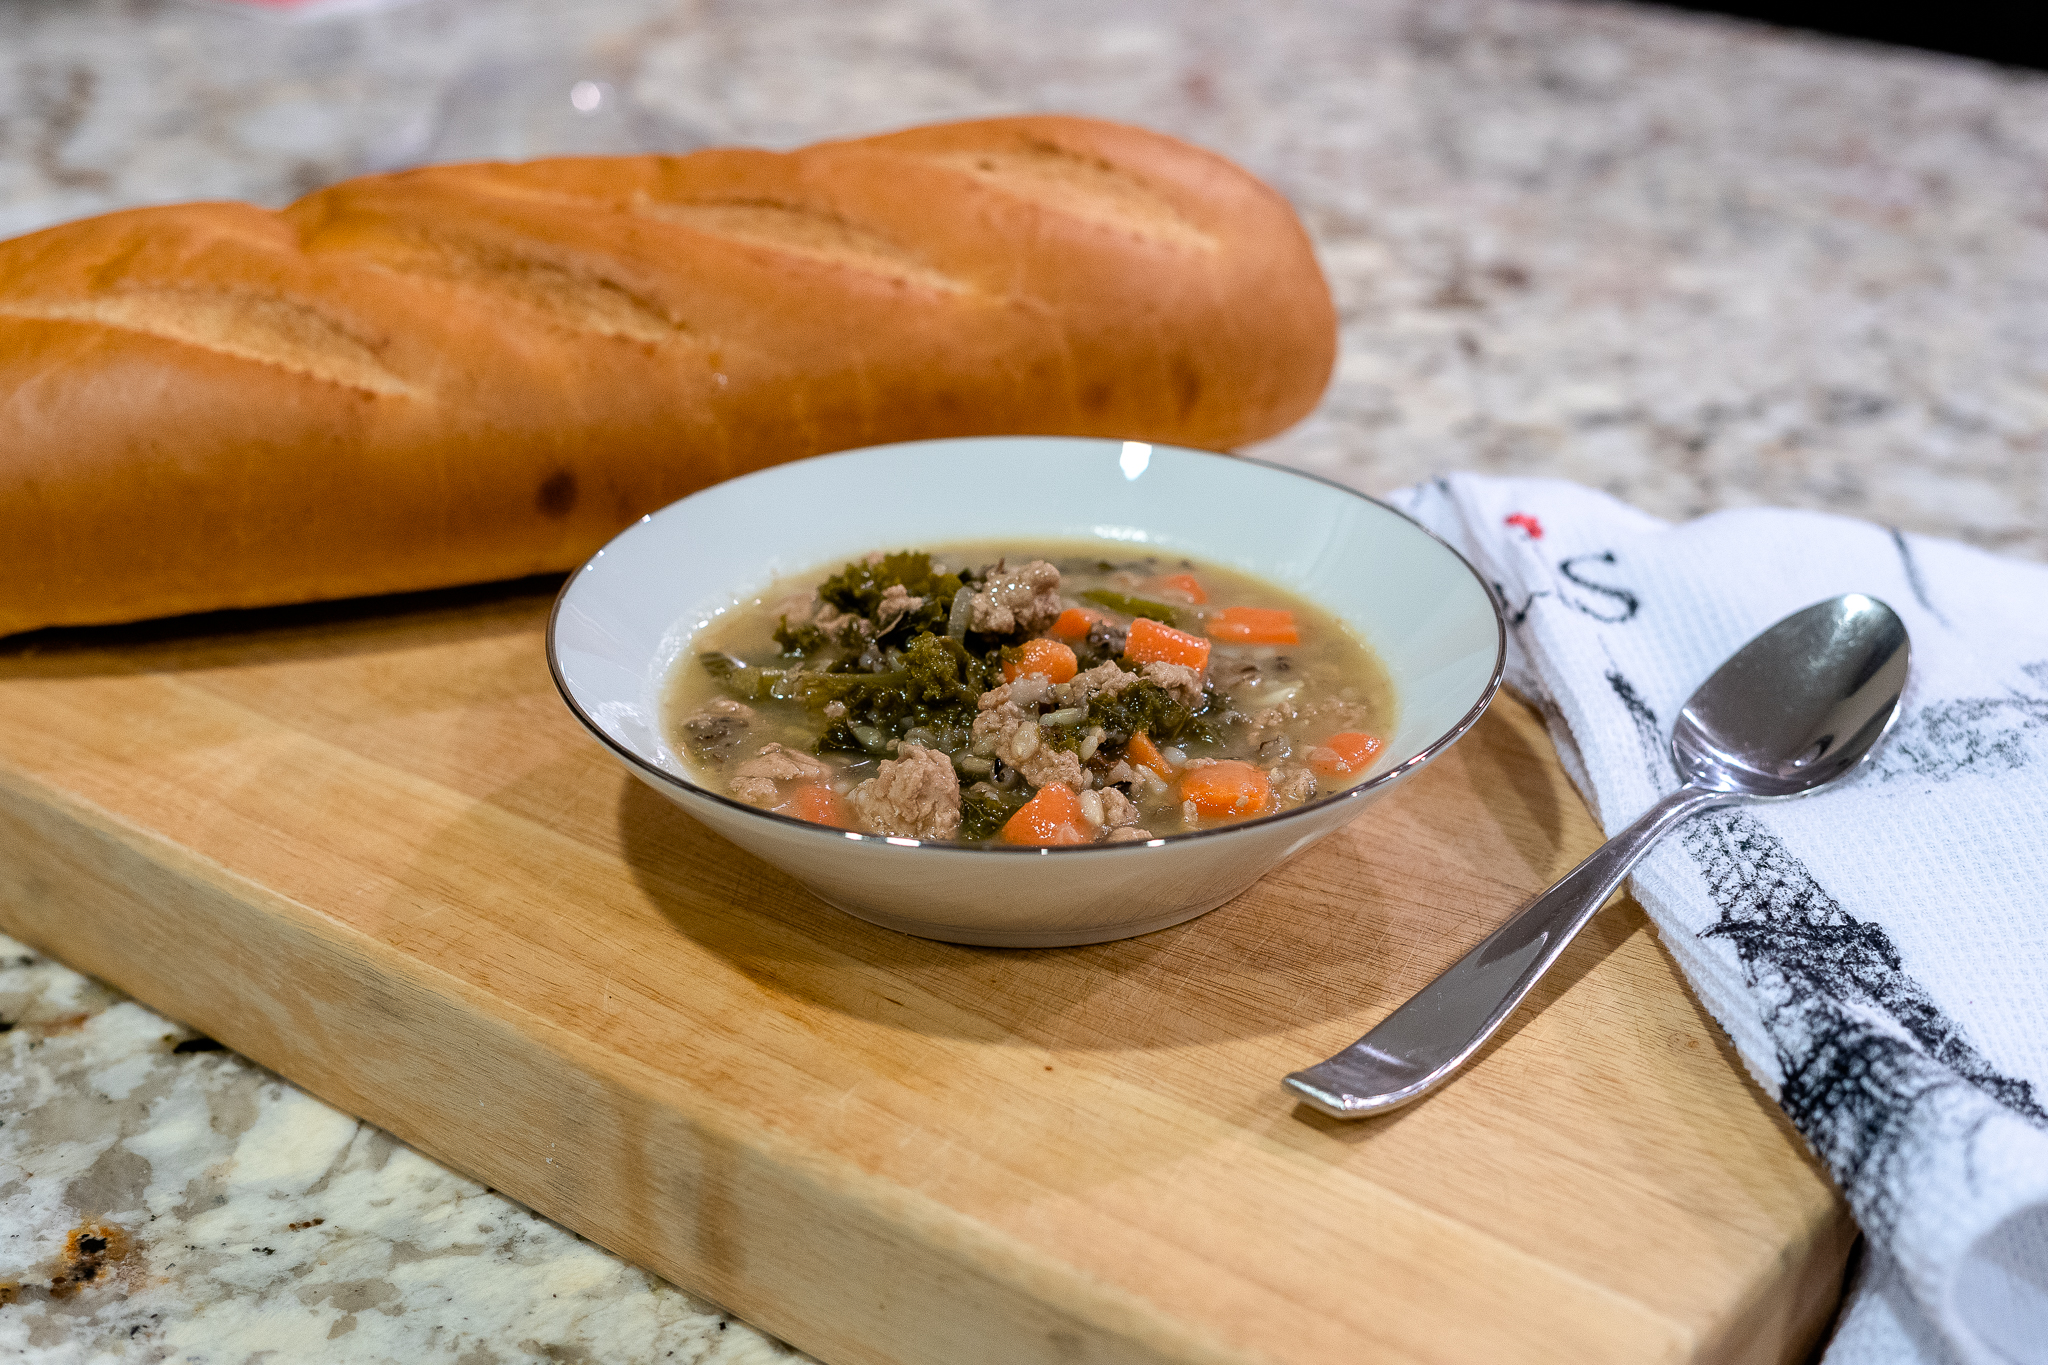 A bowl of Turkey and Wild Rice Soup